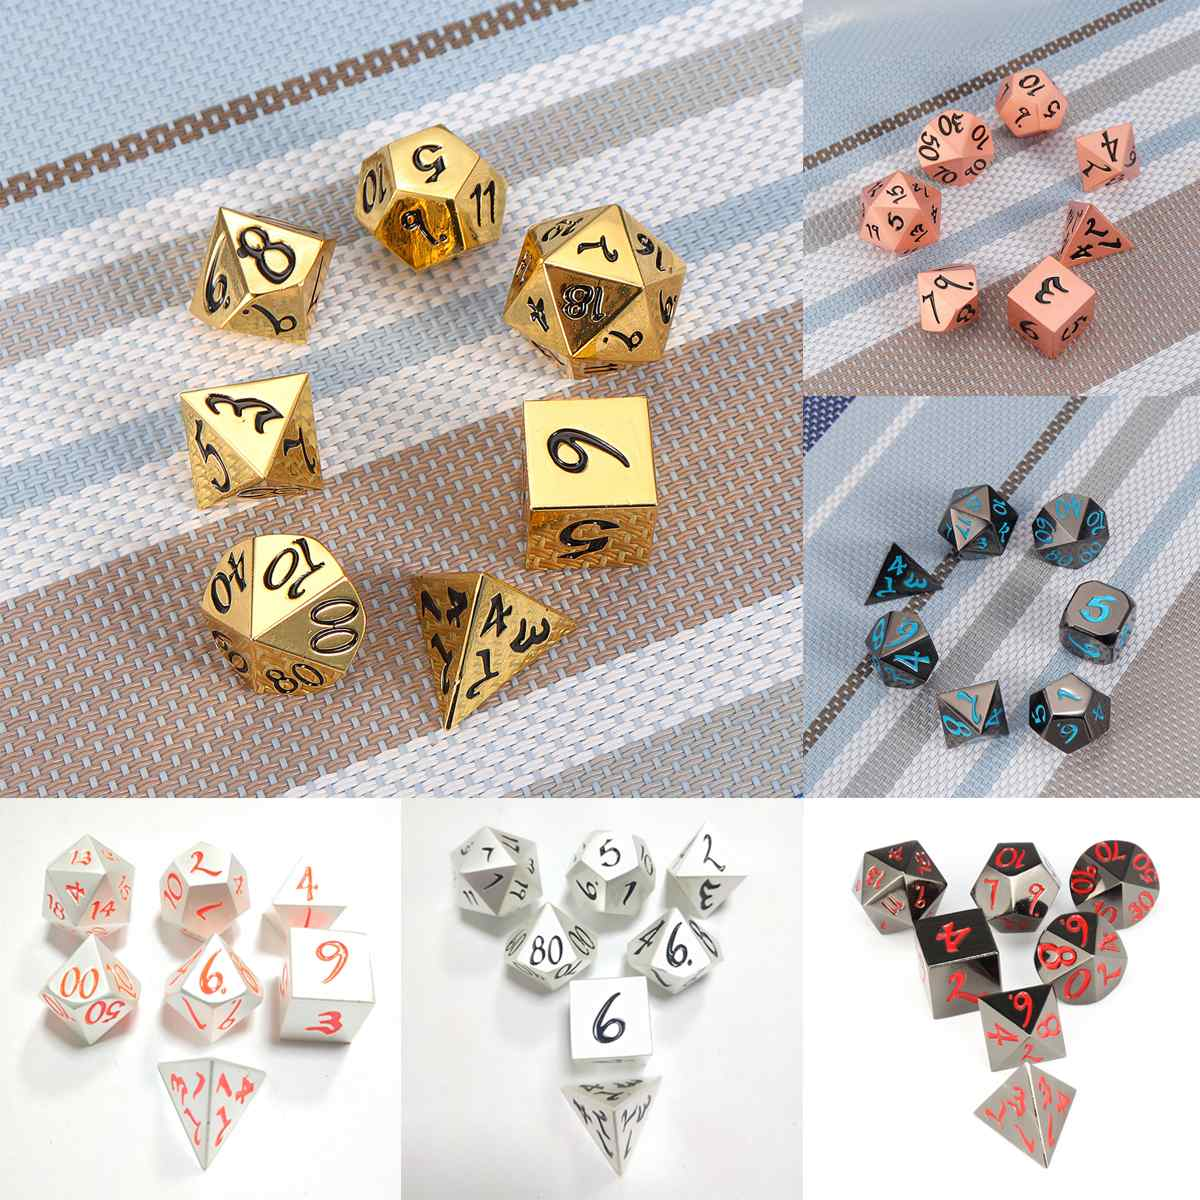 7Pcs Zinc Heavy Metal Polyhedral Dice DnD RPG Kit With Black Cloth Bag Family Entertainment Game Dices Multidimensional